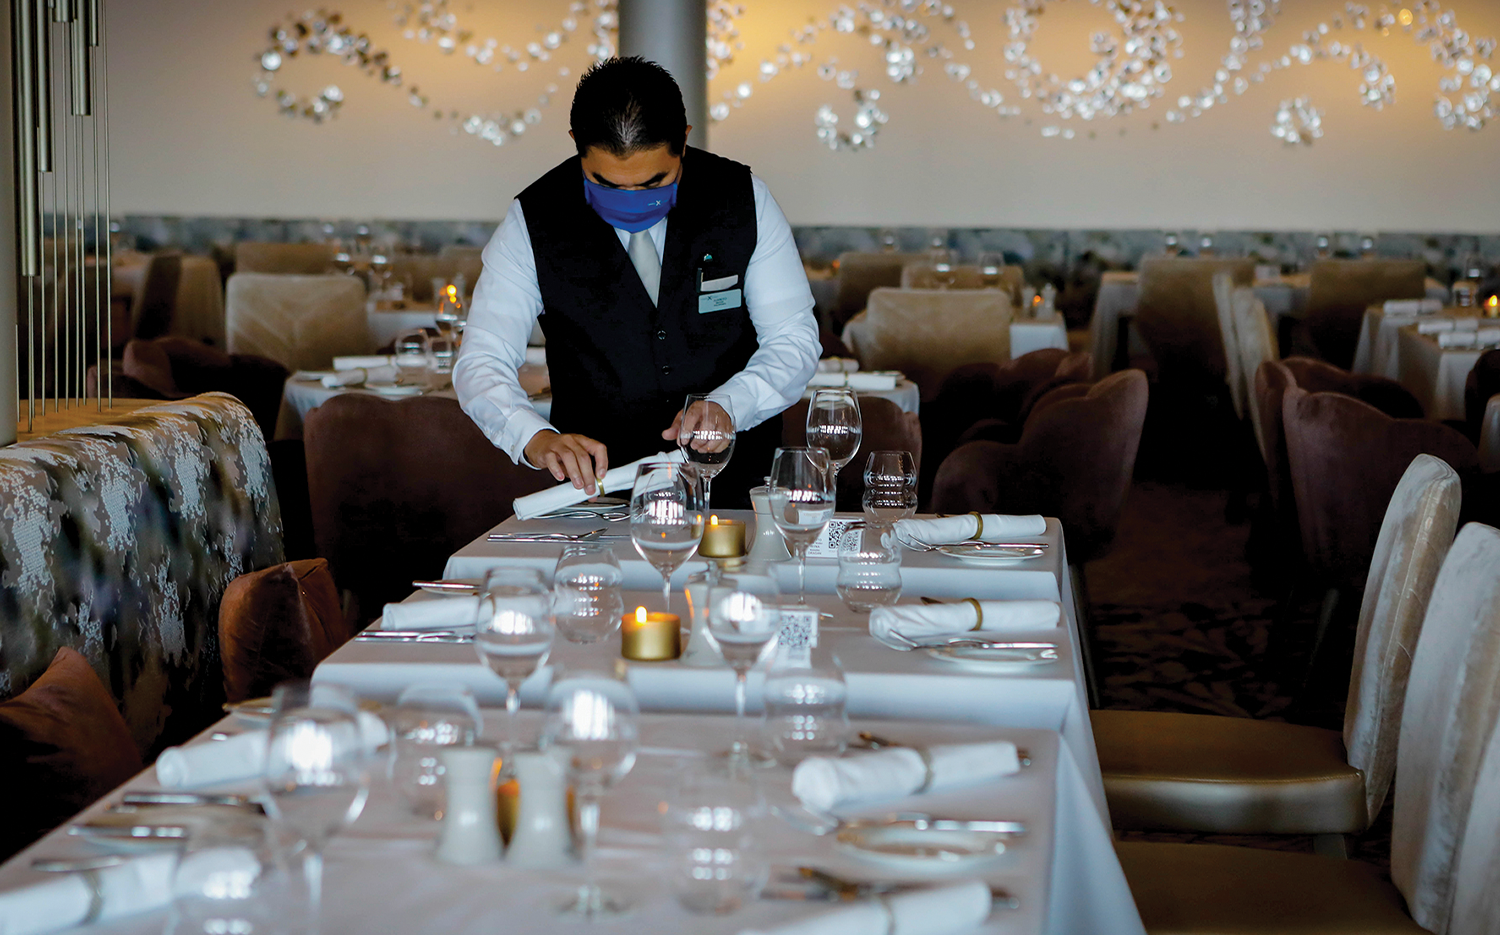 An employee sets a table at the Cosmopolitan Restaurant on the Celebrity Edge cruise ship, the first revenue-earning cruise to depart from the U.S. after the pandemic-induced hiatus.